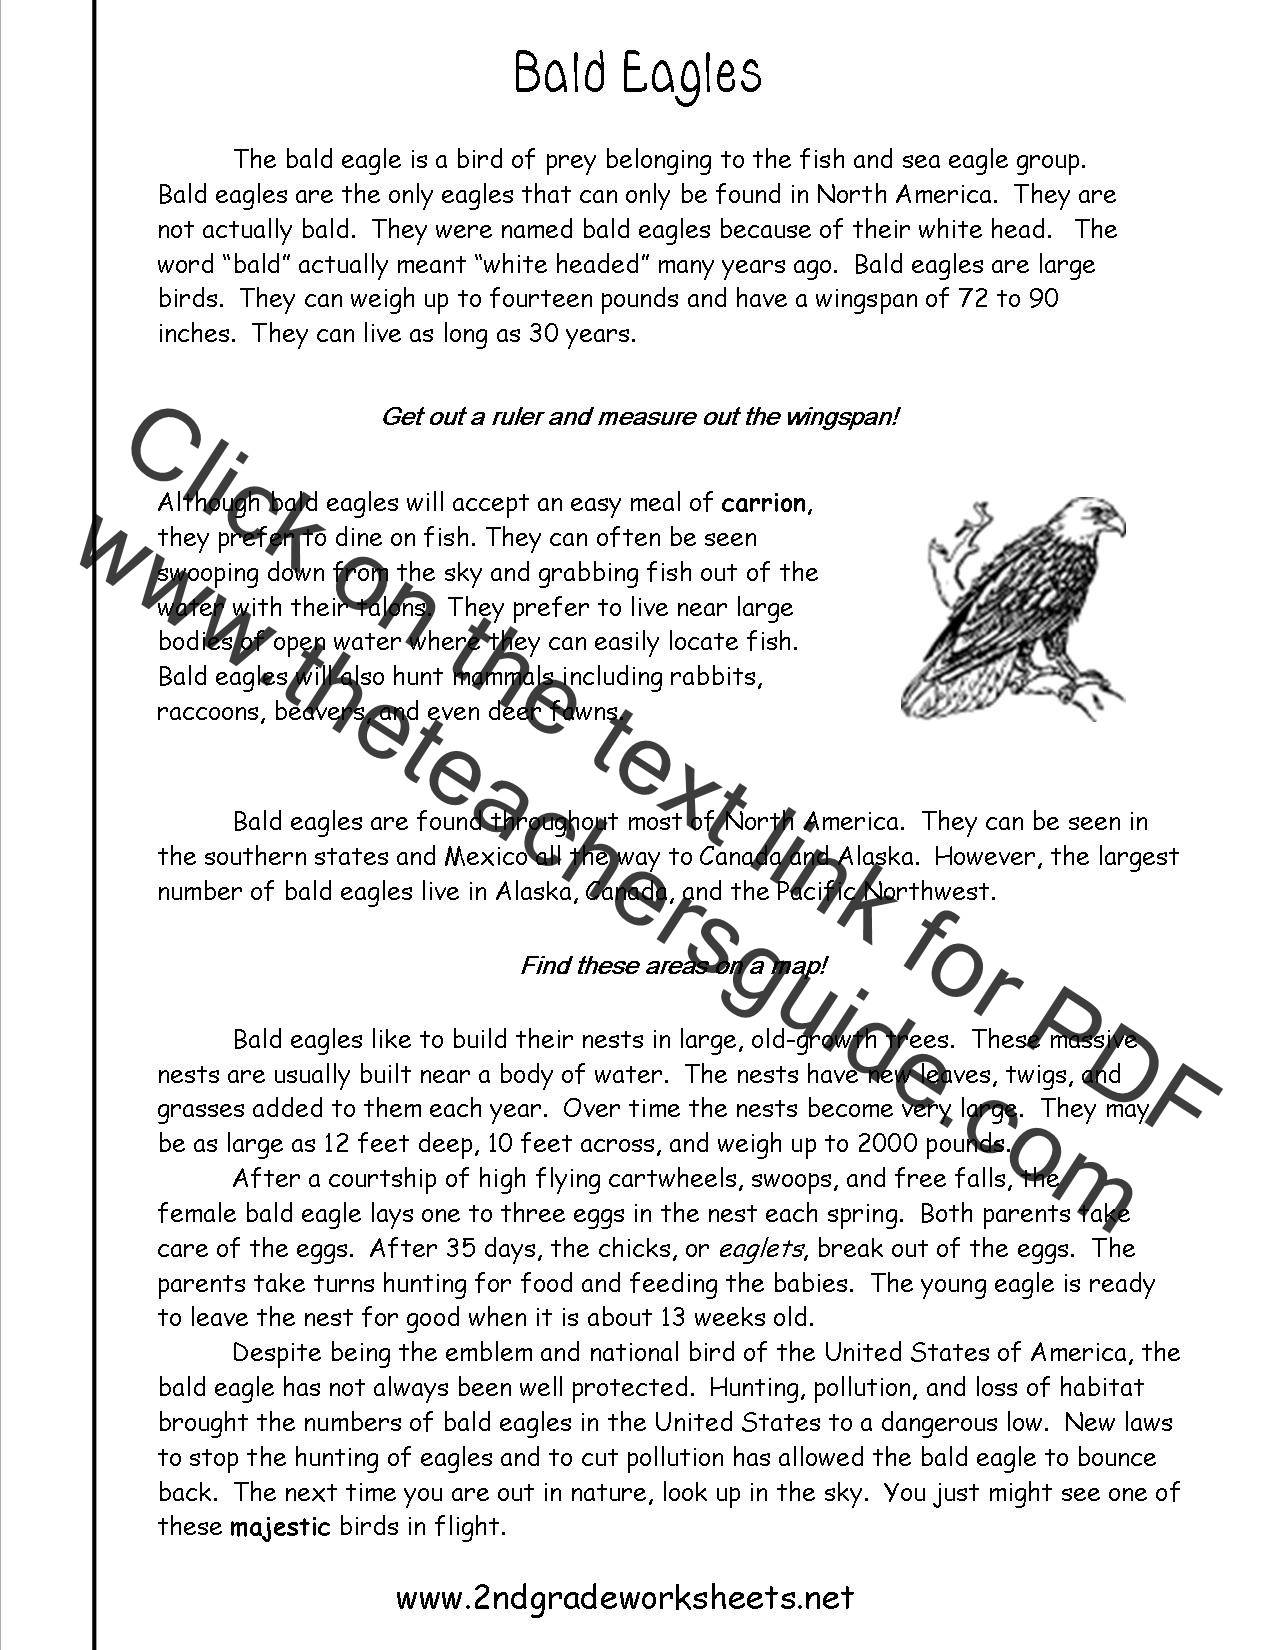 Reading Informational Text Worksheets Reading Informational Text Worksheets